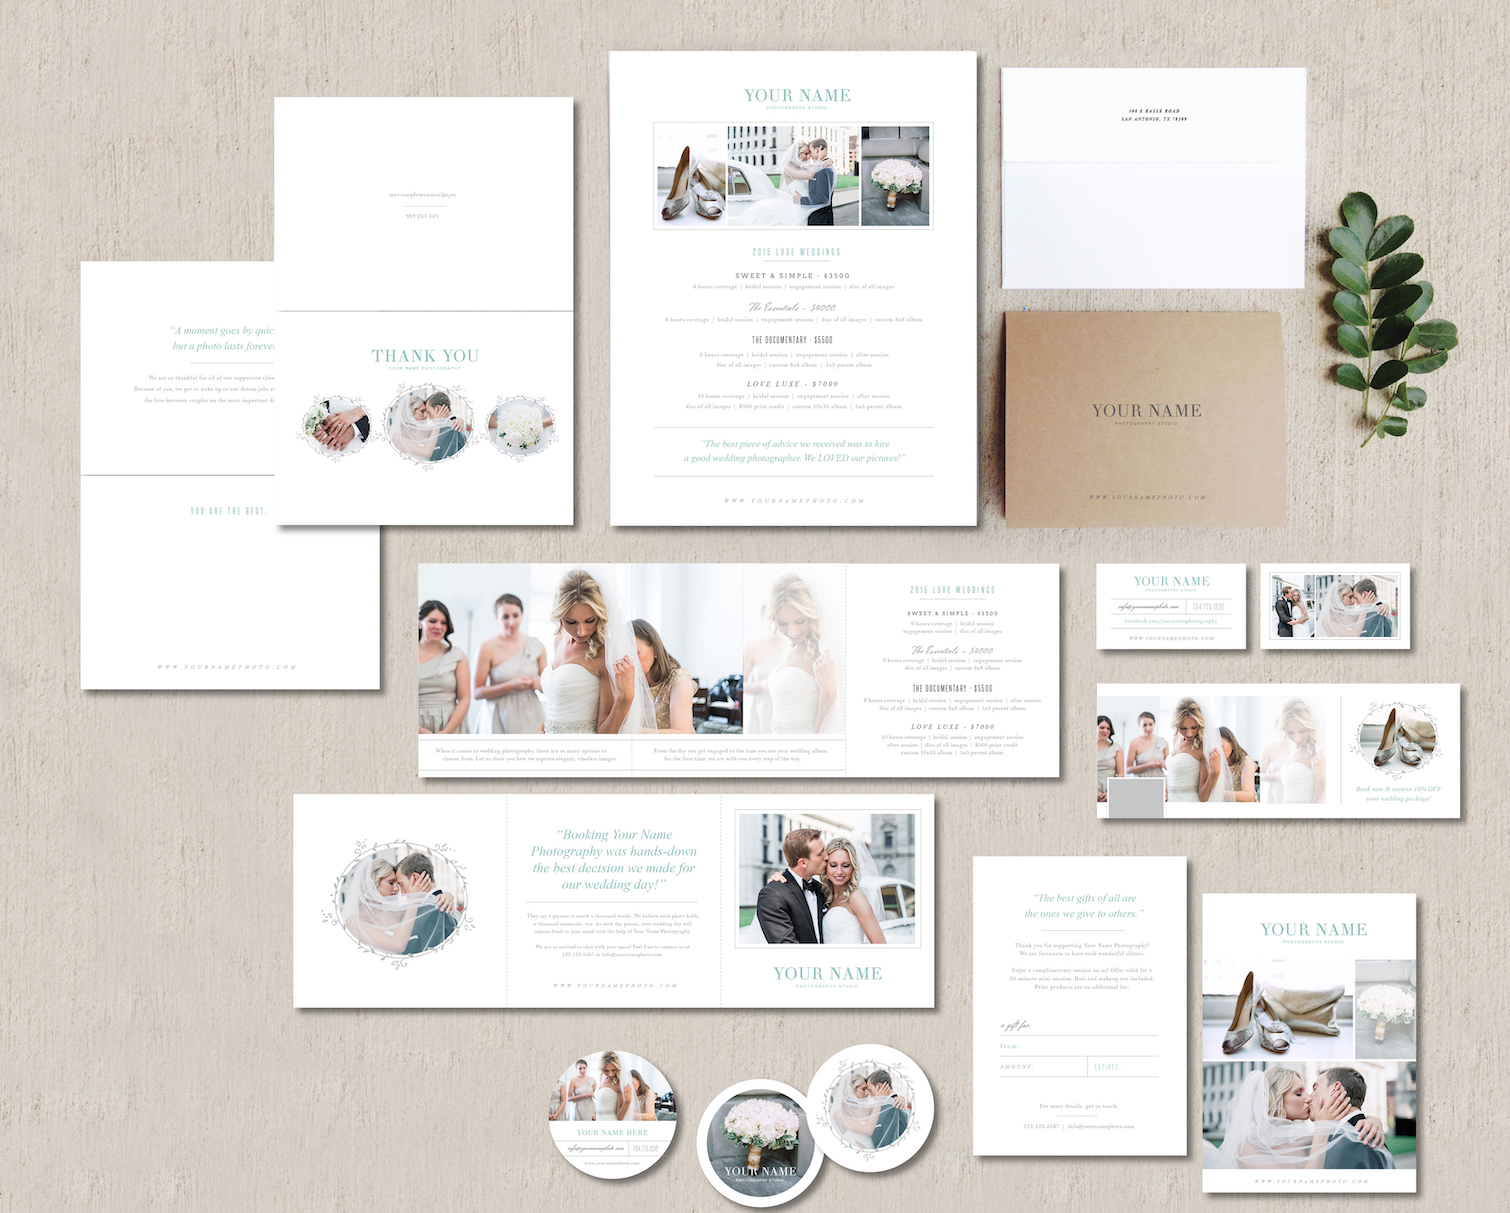 Complete the freebie with this matching marketing set and magazine to complete a cohesive look.